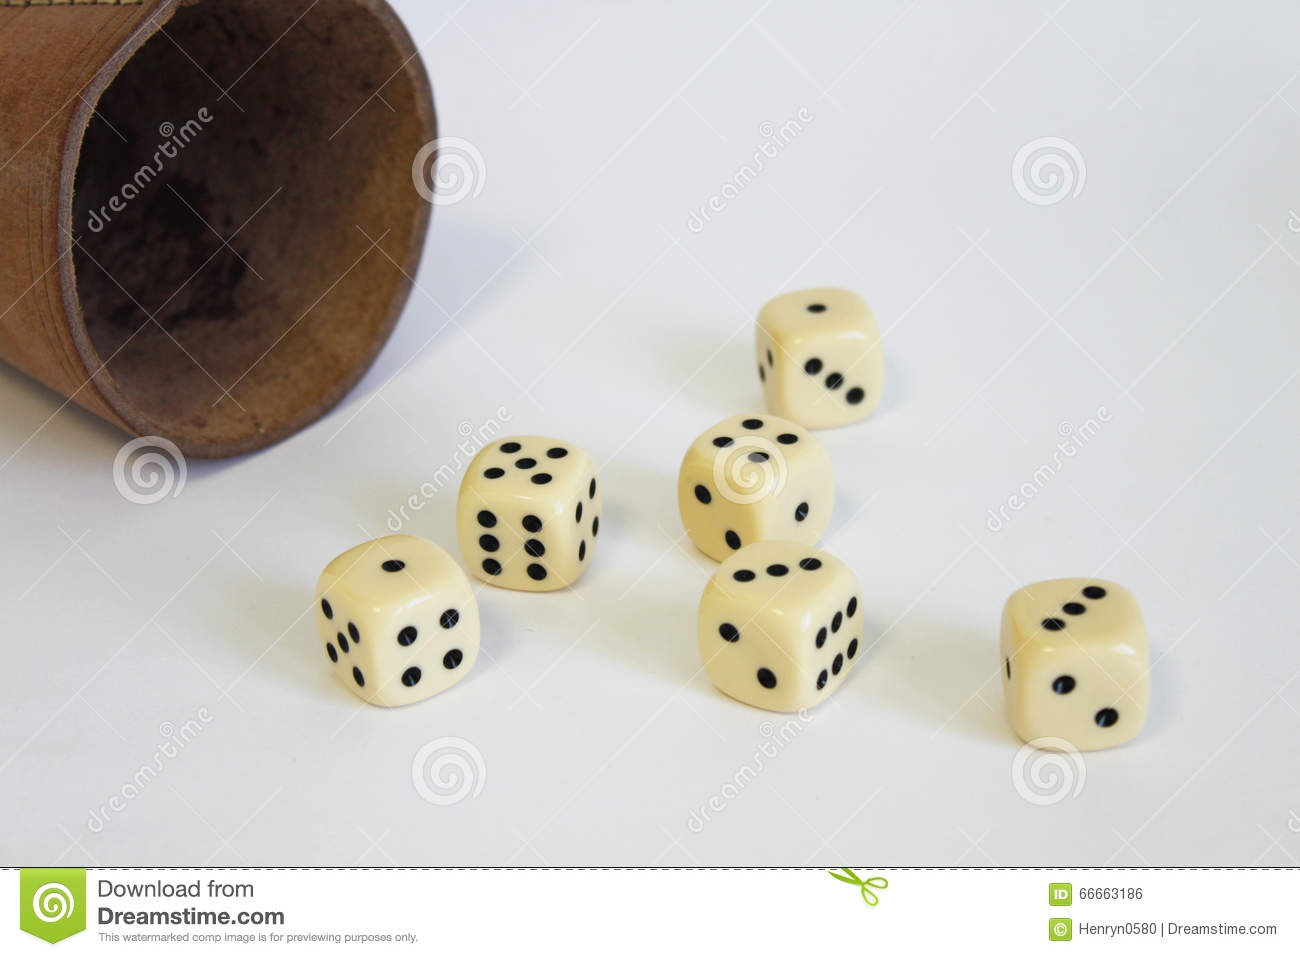 Communication on this topic: How to Play Lucky Numbers (Dice), how-to-play-lucky-numbers-dice/